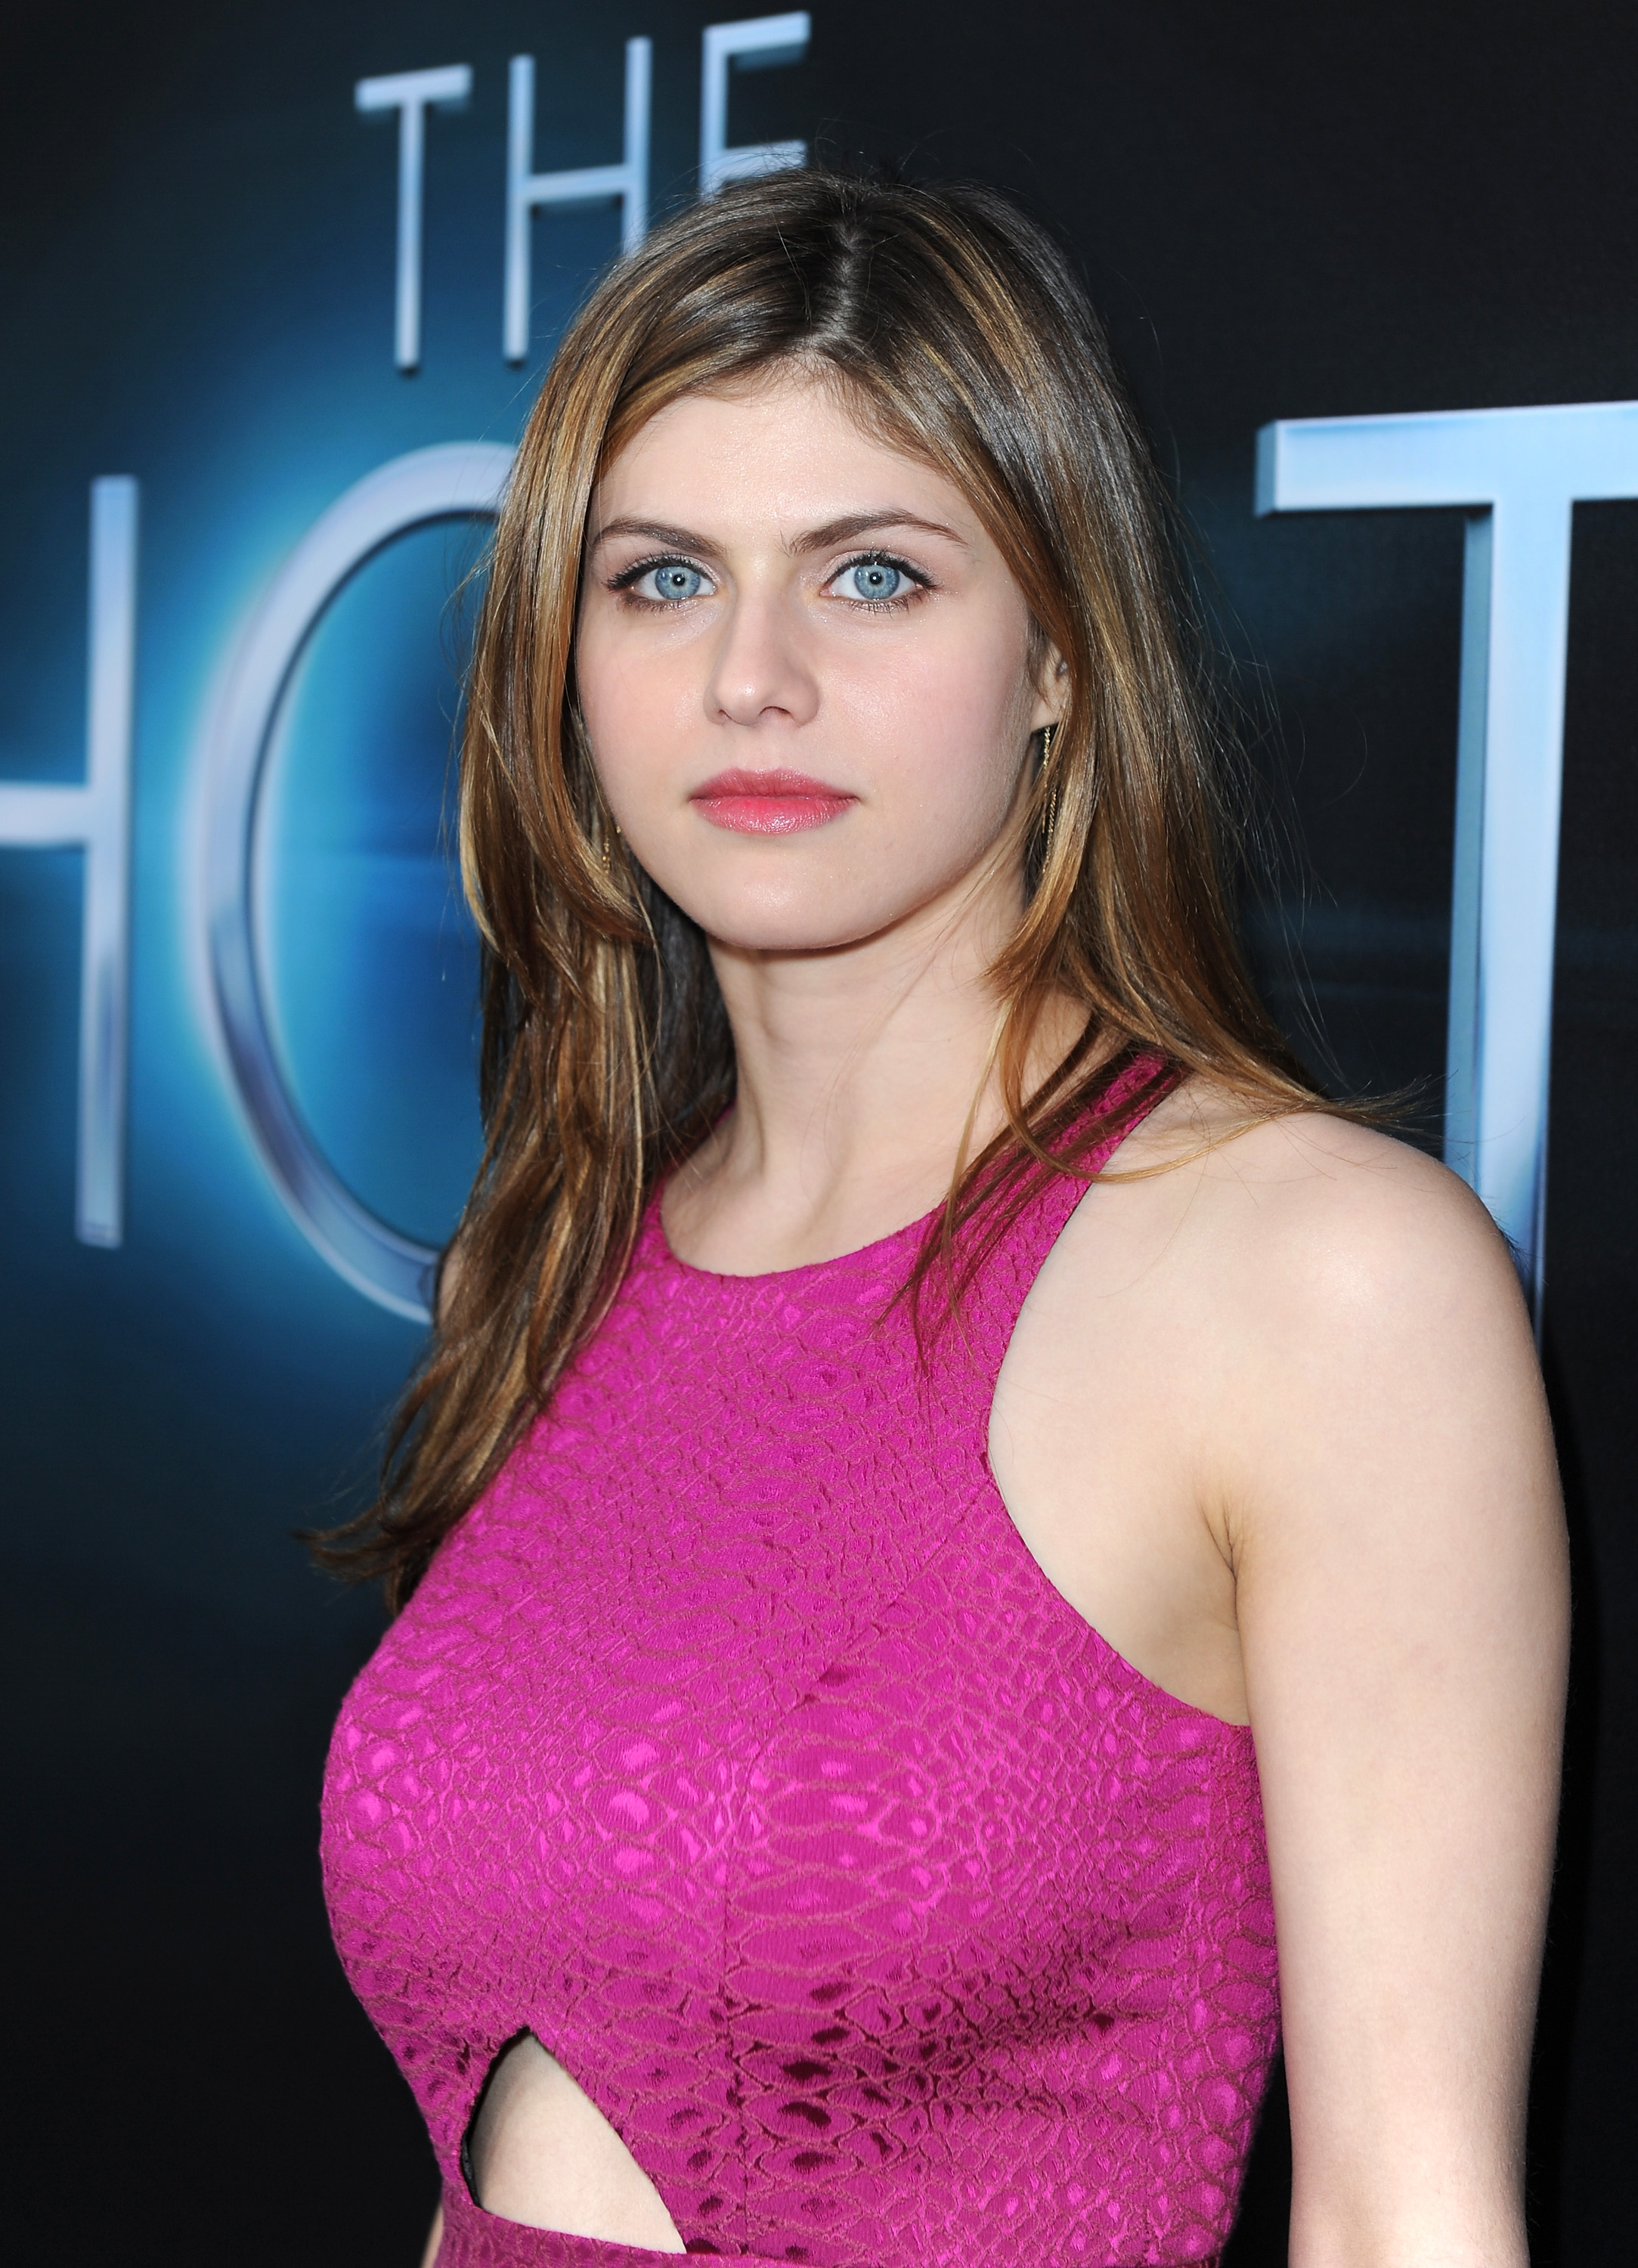 Andrea Daddario Nude would you rather make love with alexandra daddario or watch